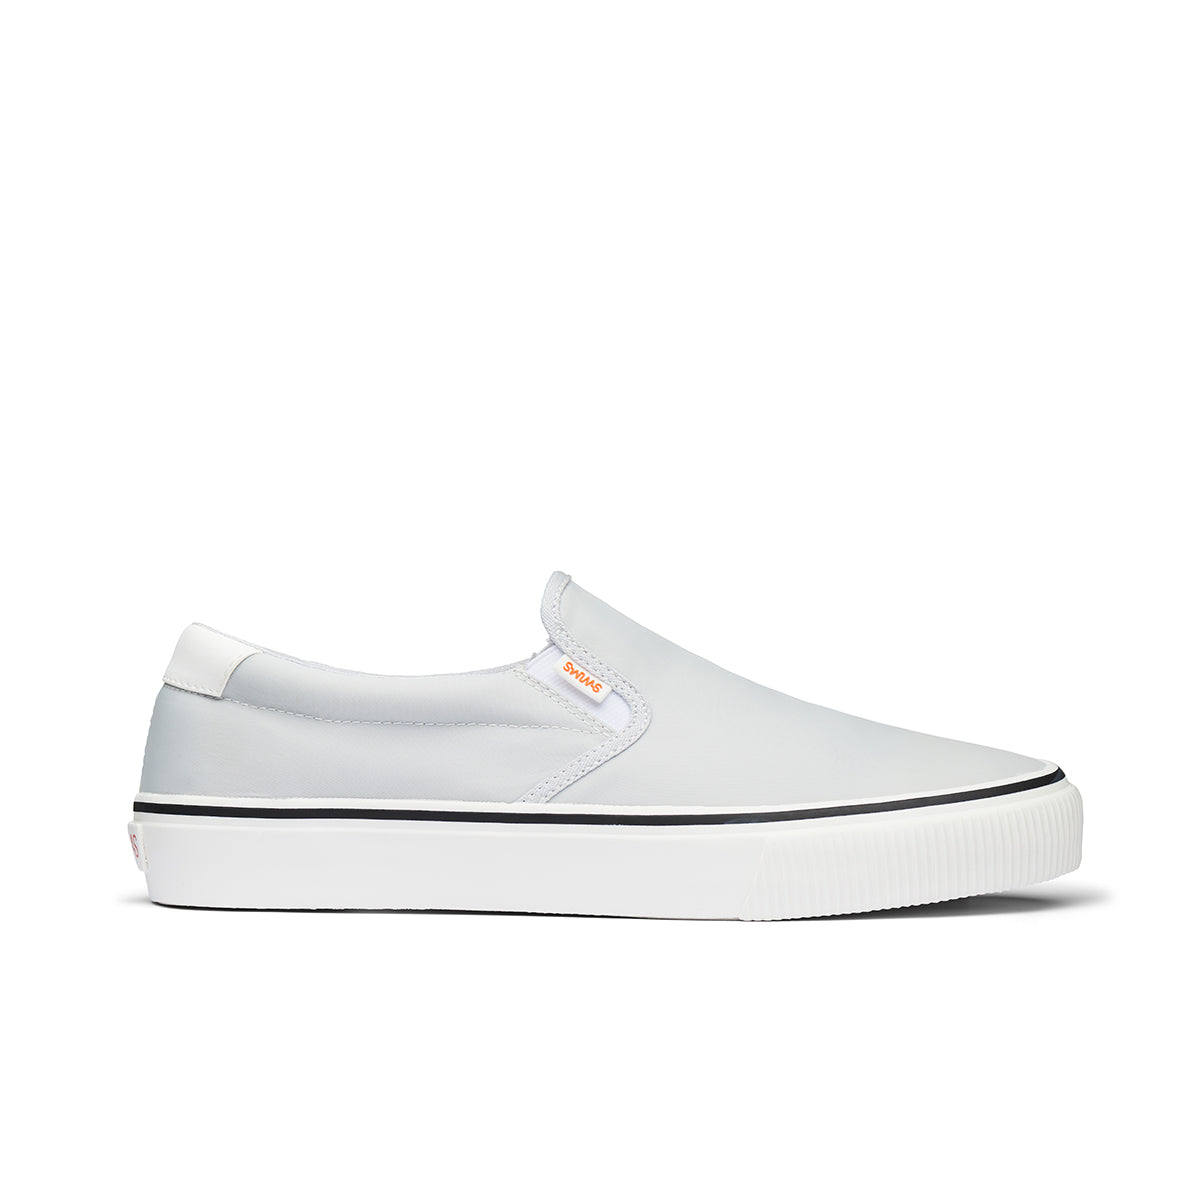 24Hr Slip On - background::white,variant::Gray/White